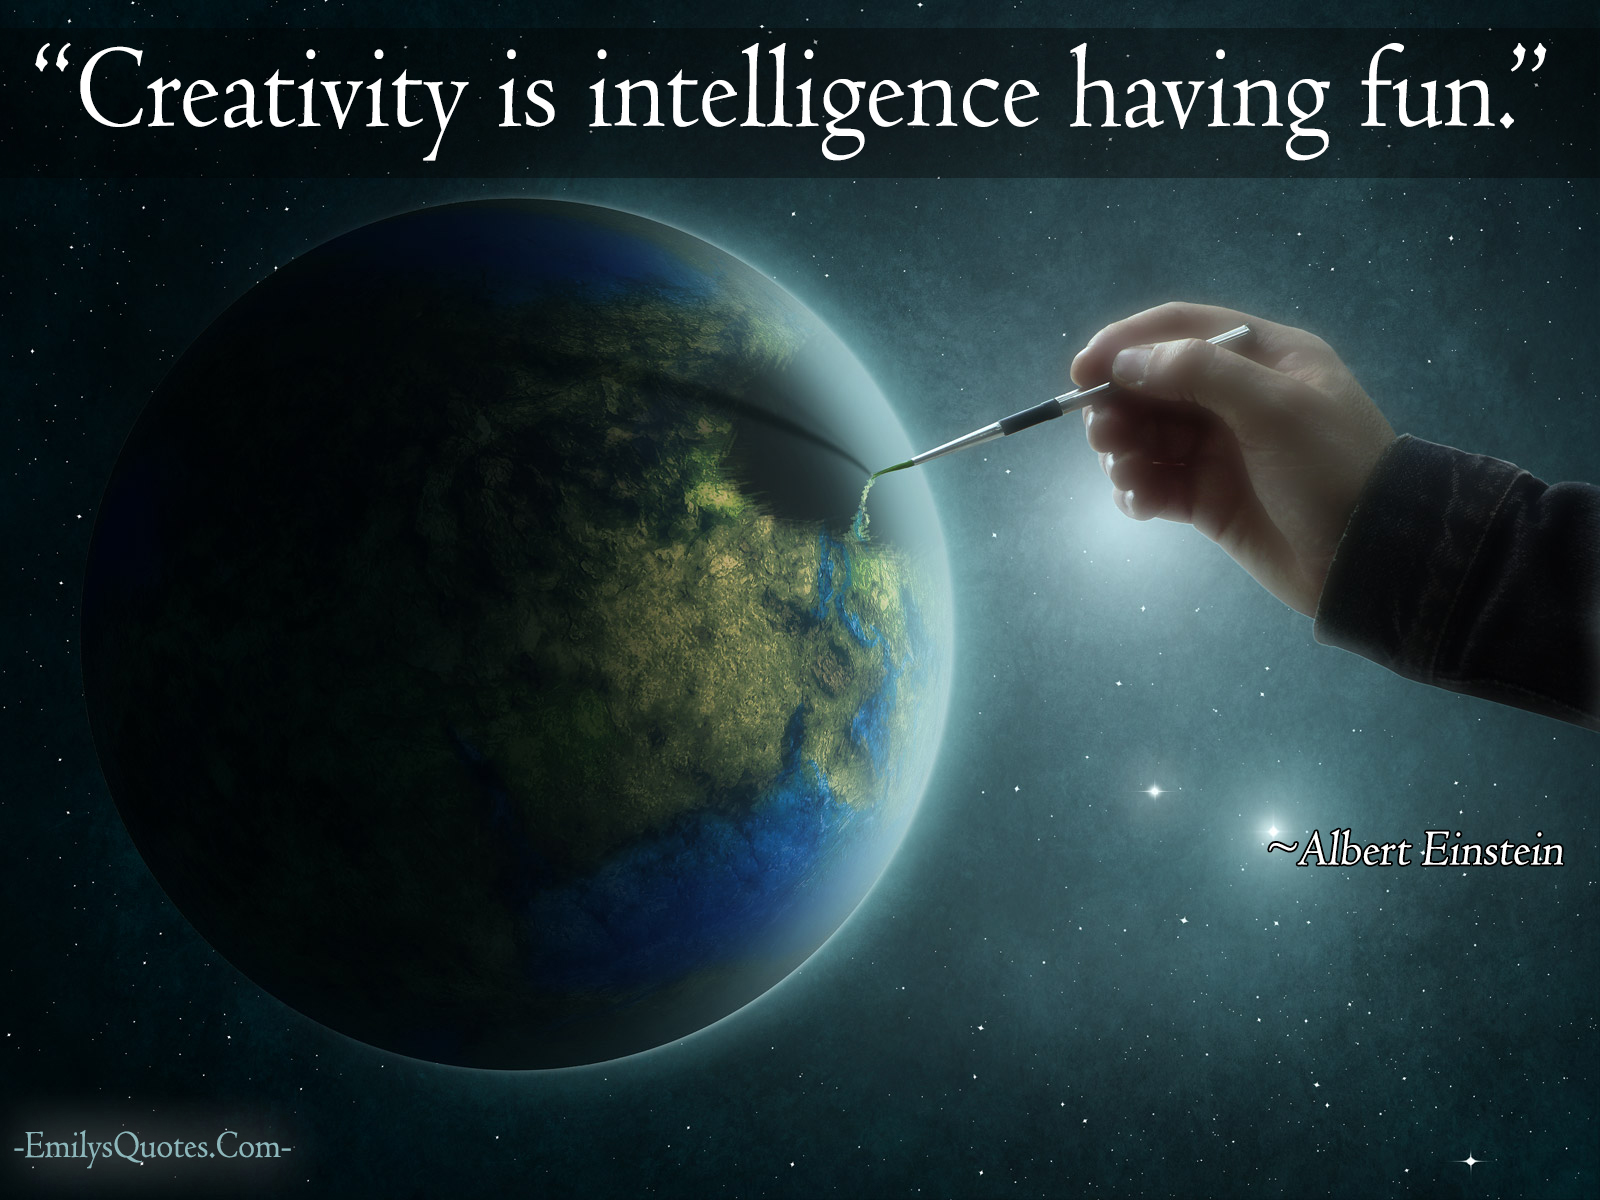 EmilysQuotes.Com - creativity, intelligence, wisdom,  Albert Einstein, fun